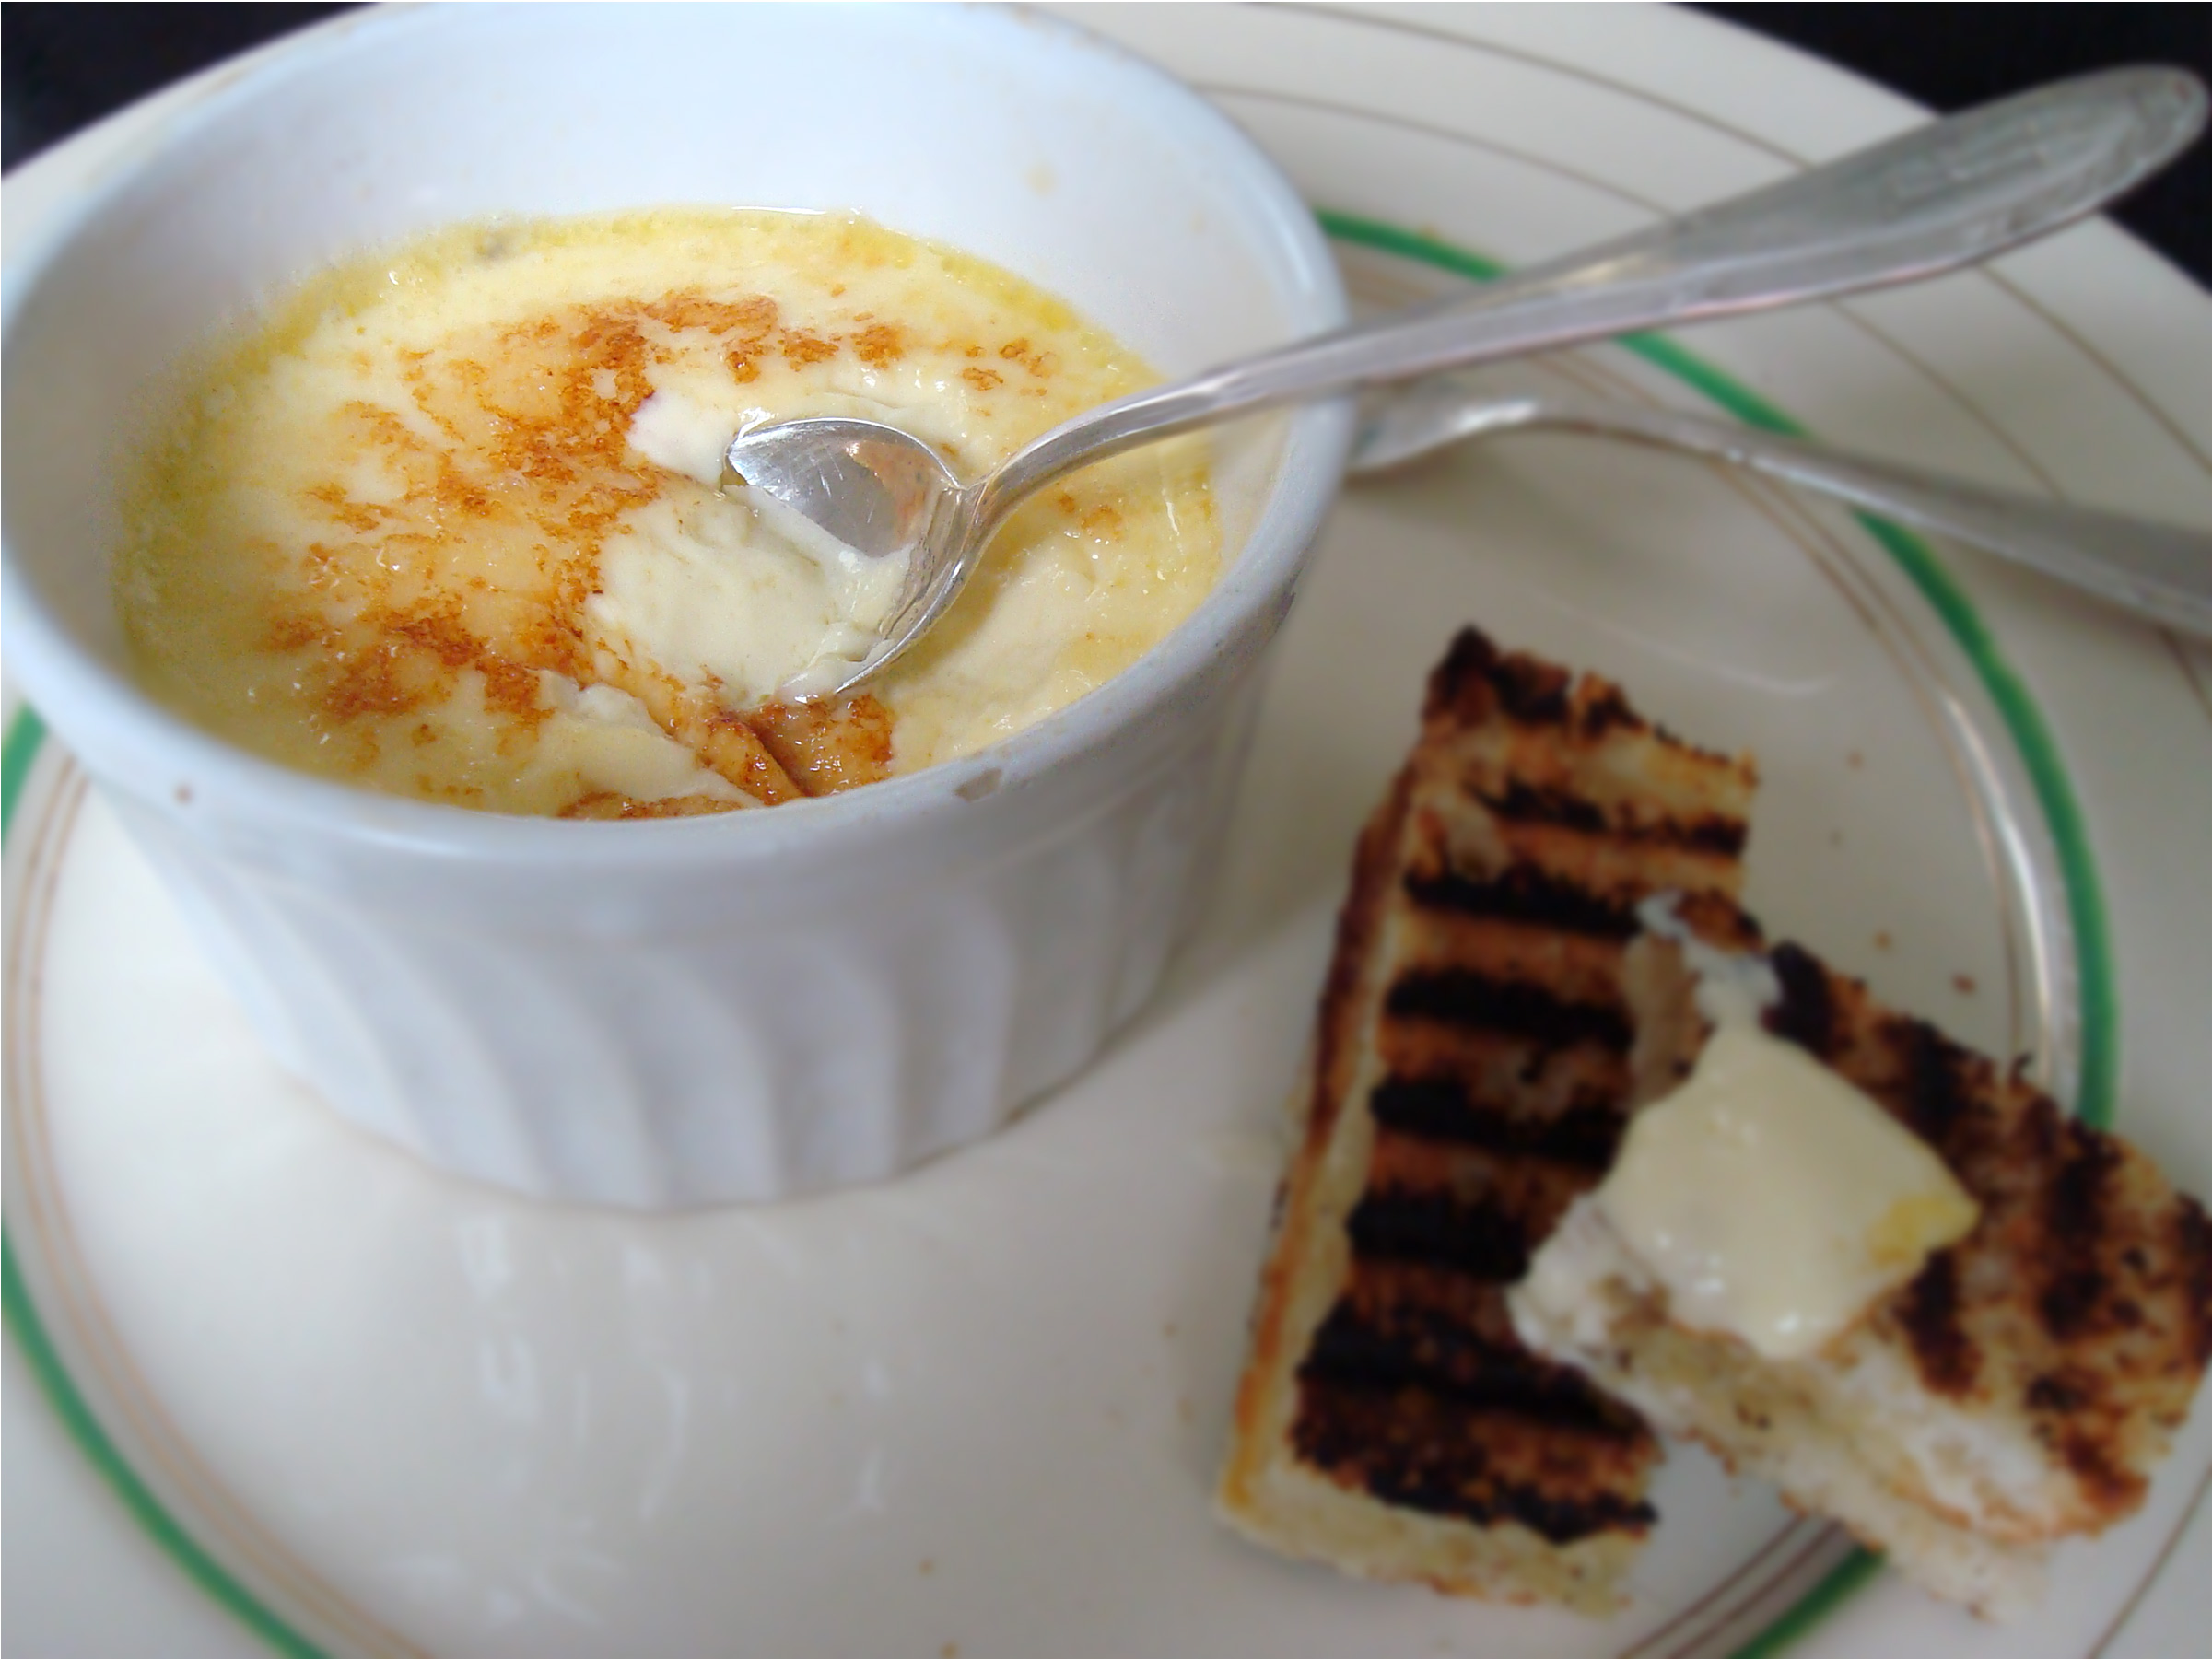 Parmesan custard and anchovy toast